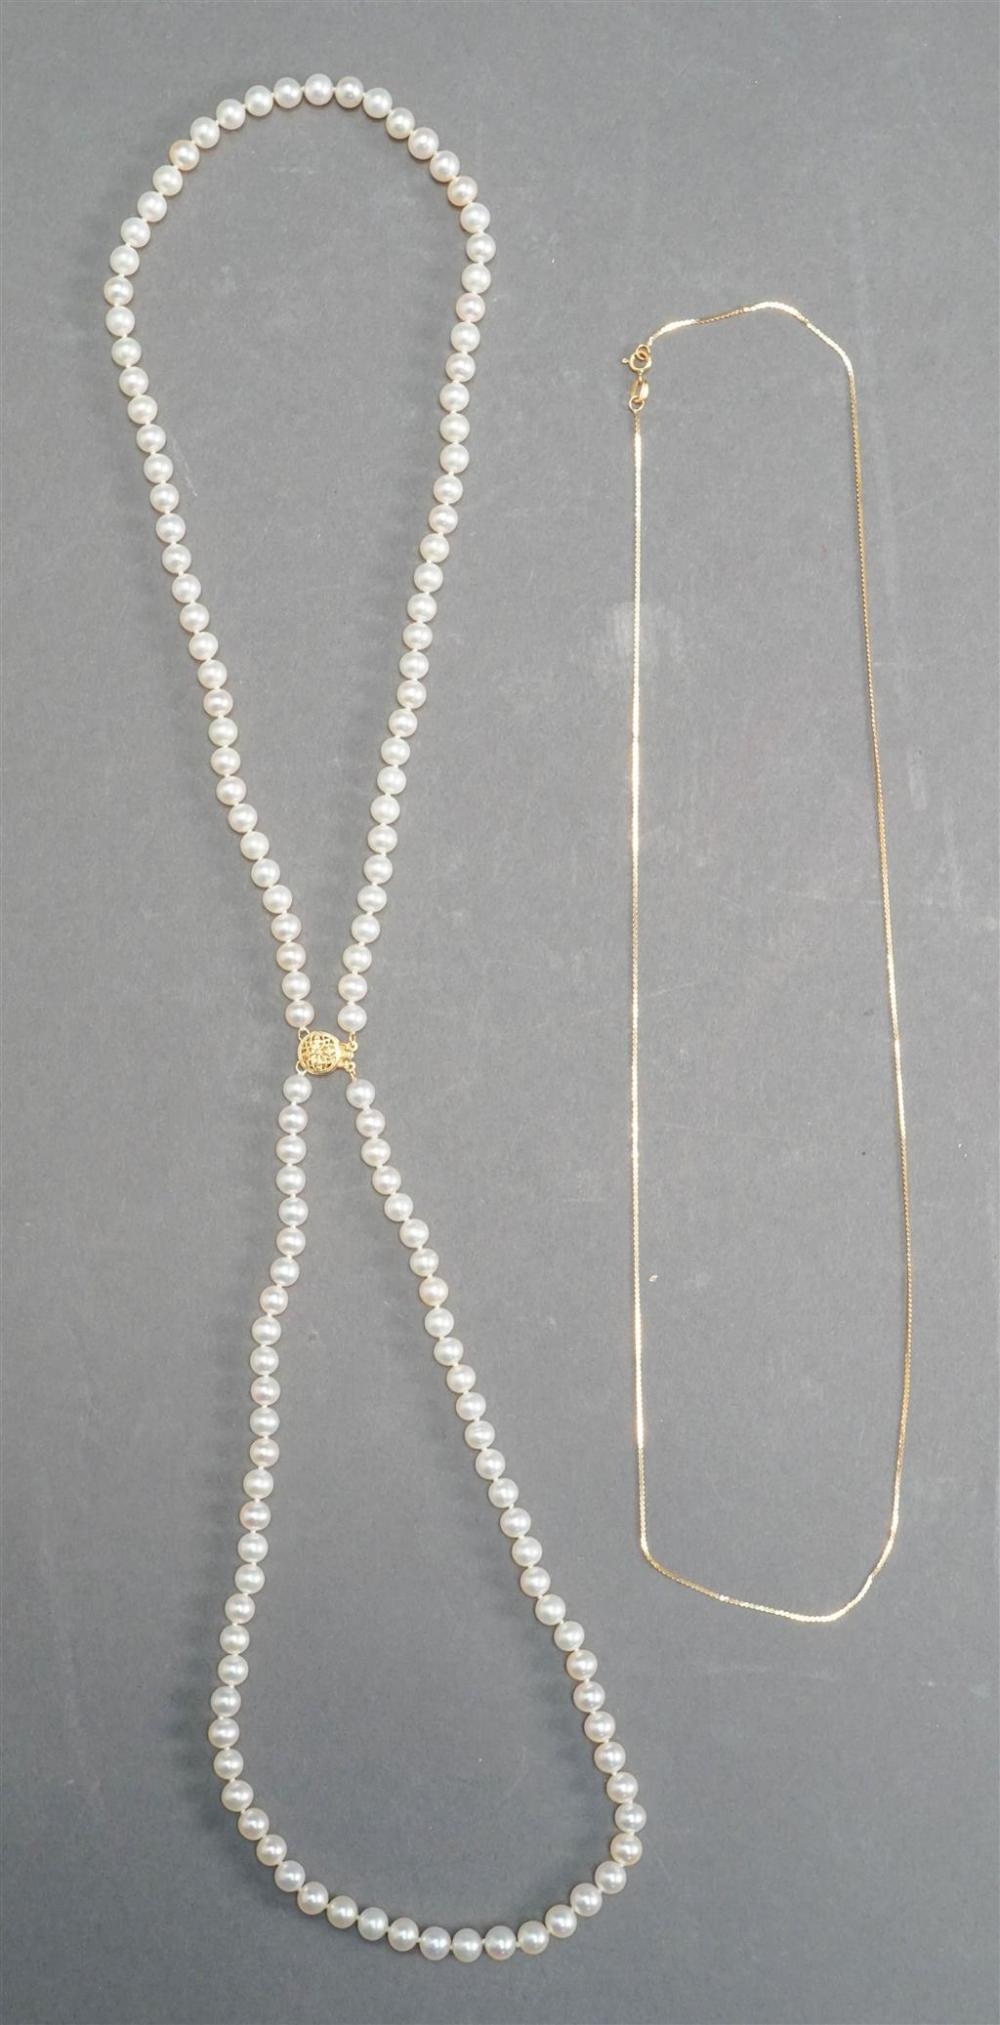 14-Karat Yellow-Gold Pearl Double Strand Necklace and 14-Karat Yellow-Gold Thin Necklace (1.5 dwt)